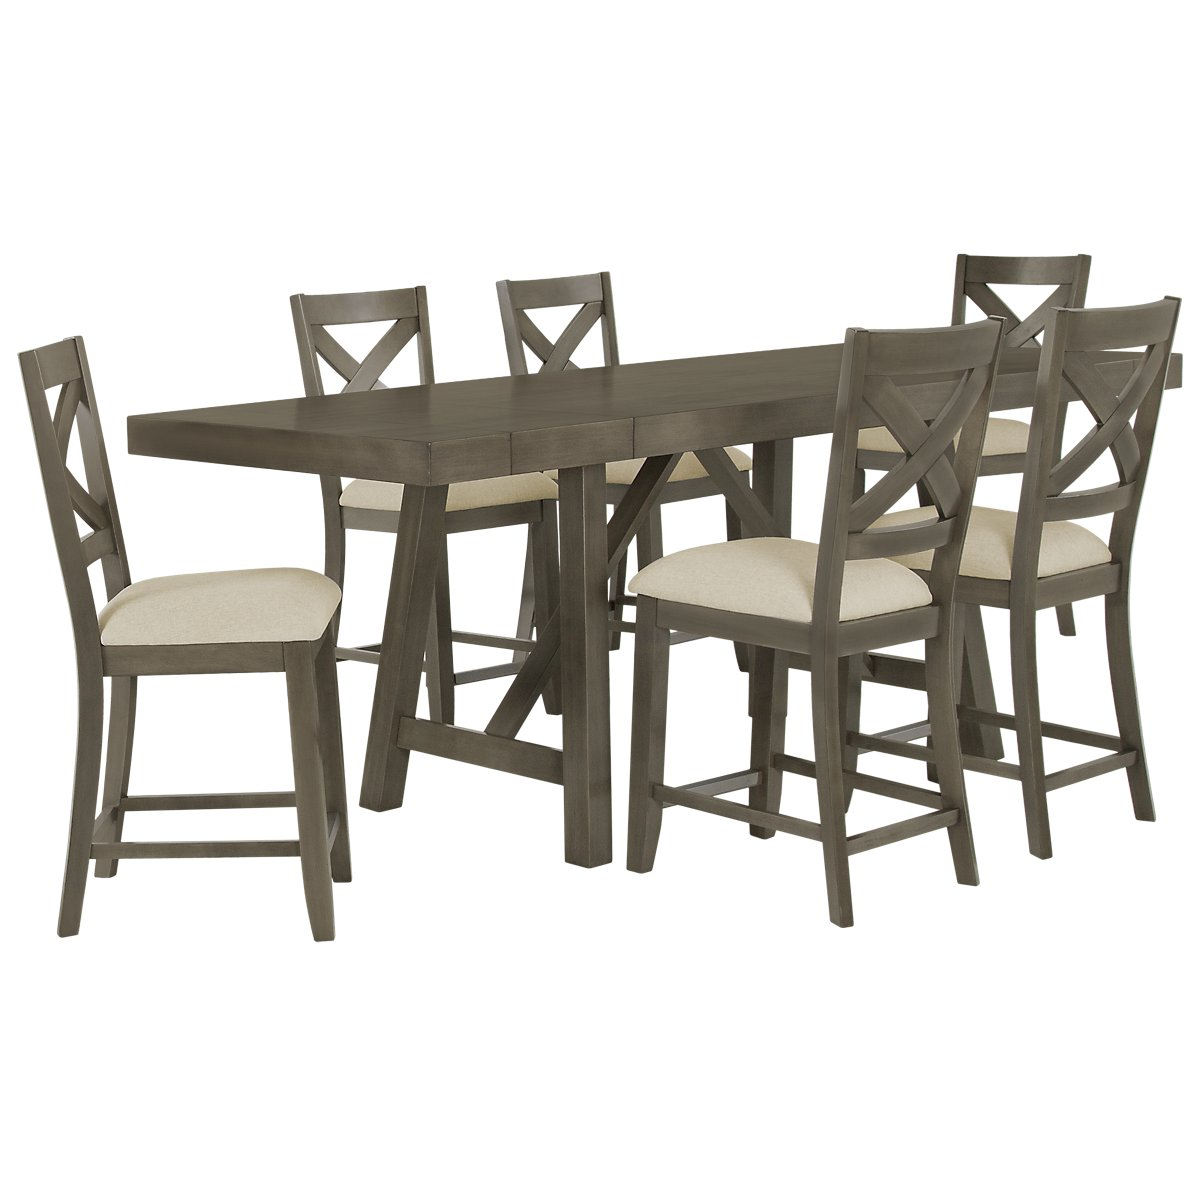 Omaha Gray High Table & 4 Wood Barstools